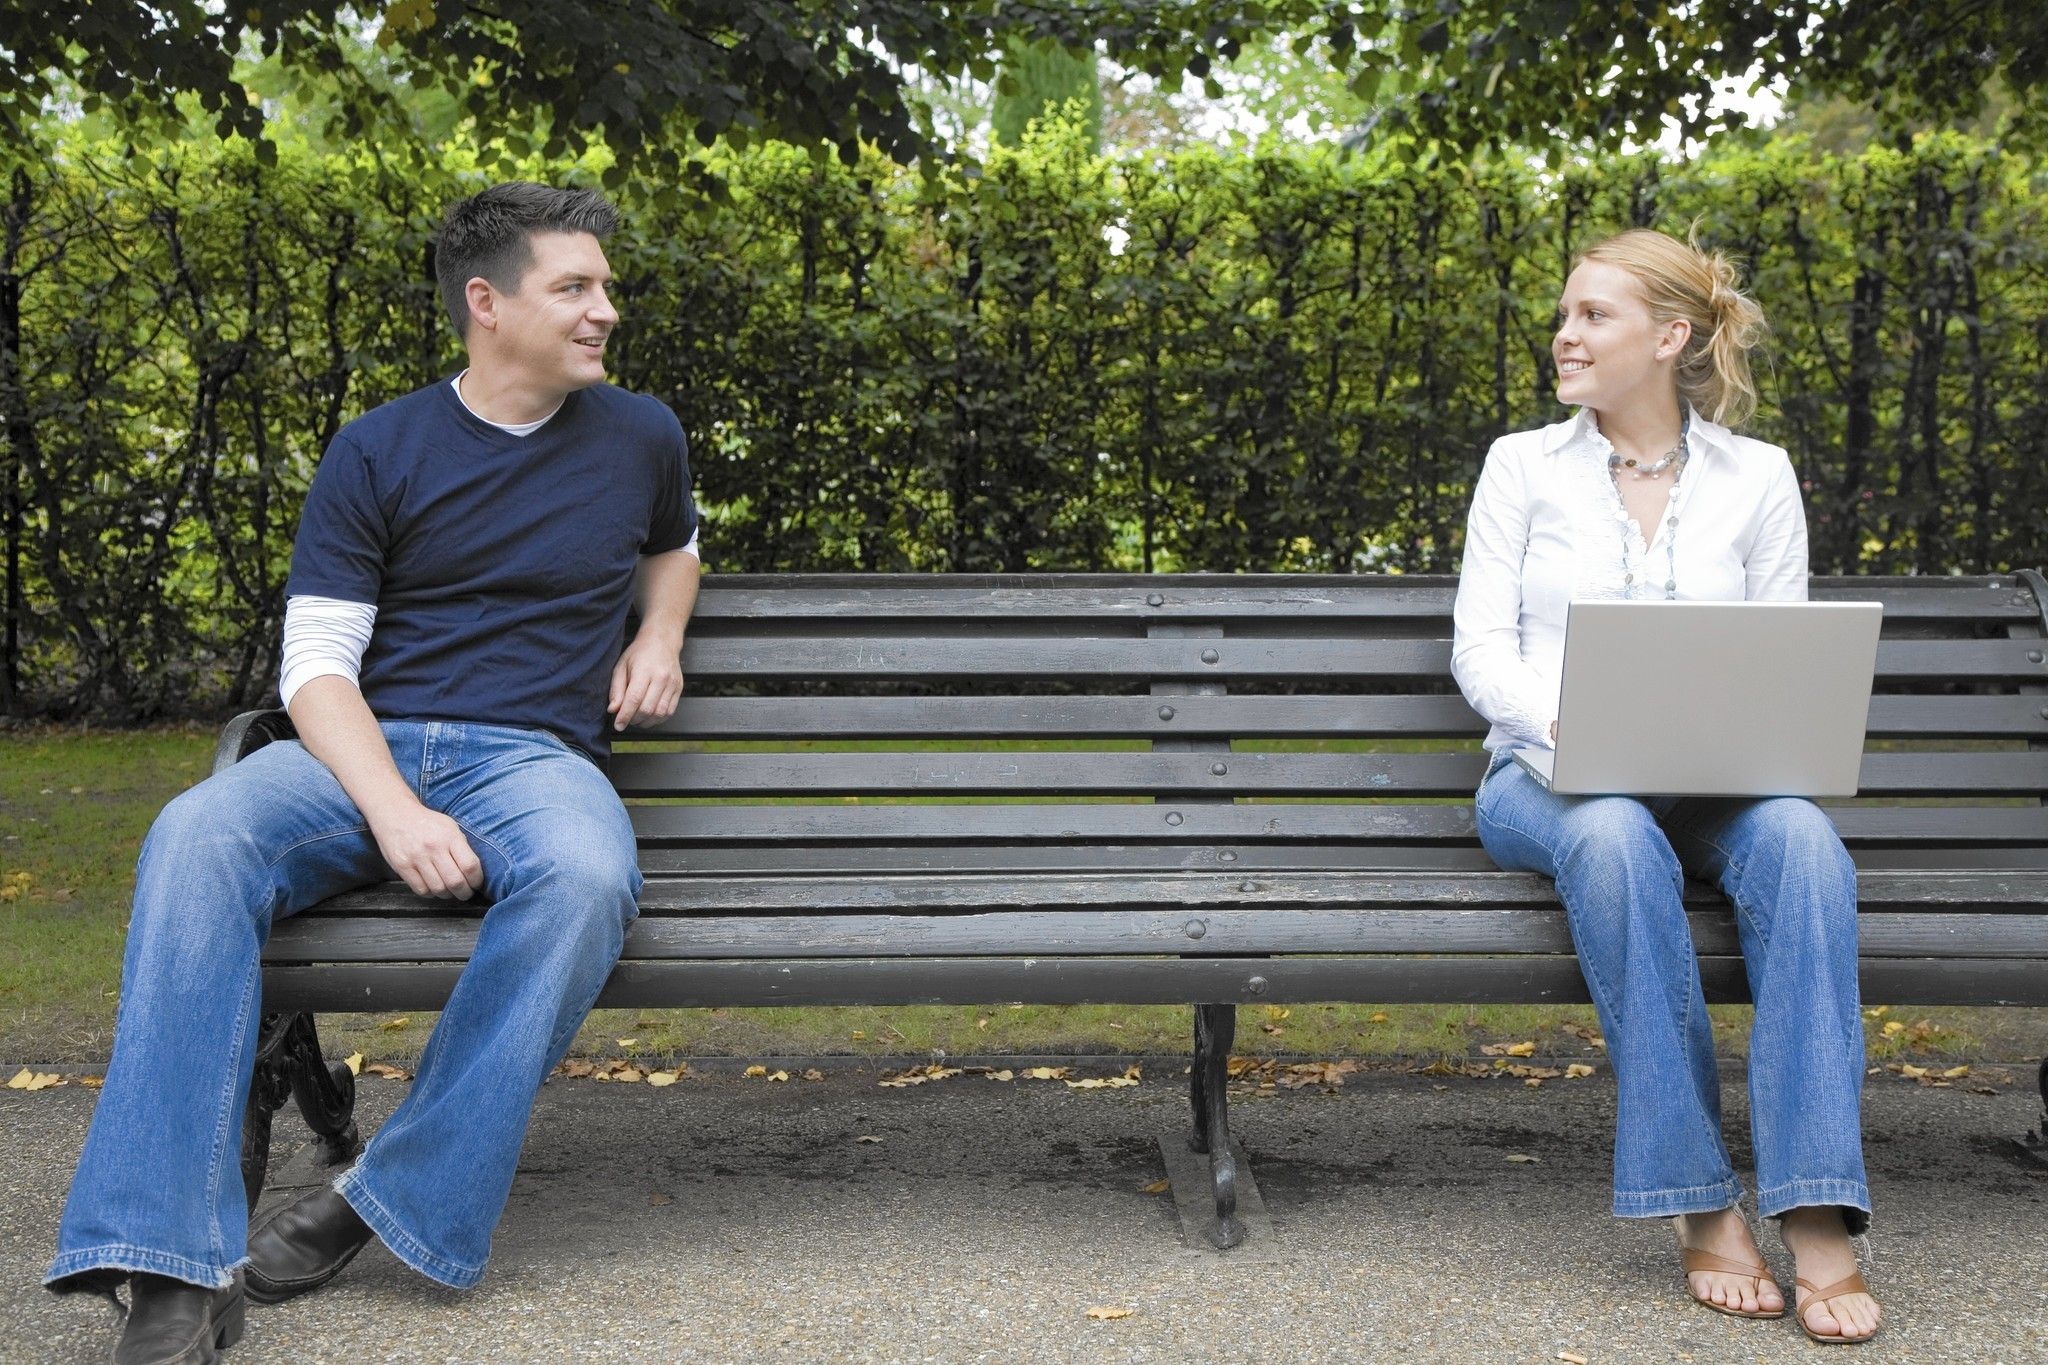 Readers weigh in on power of talking to strangers